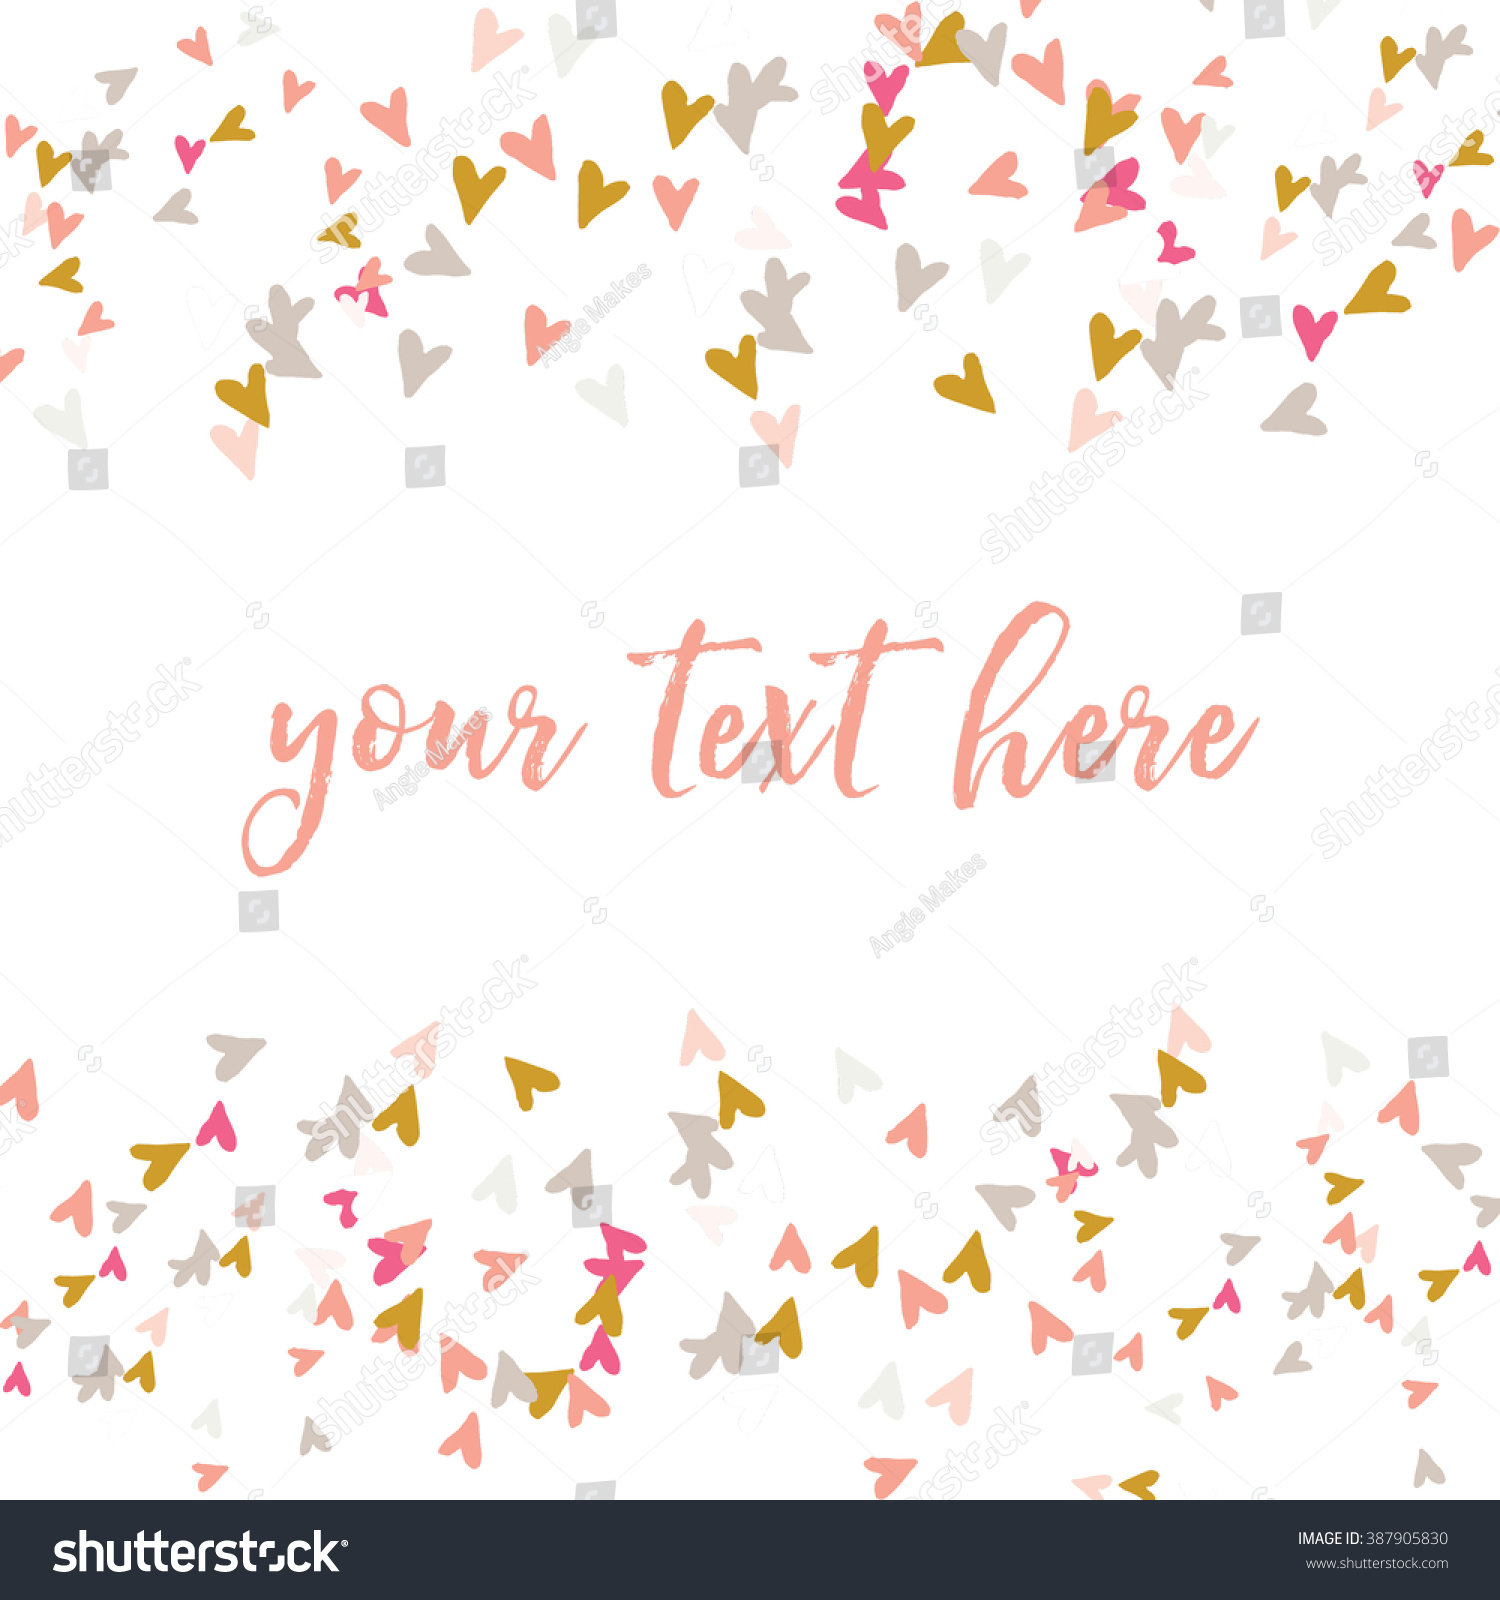 Pink And Gold Confetti Hearts Vector Border Background